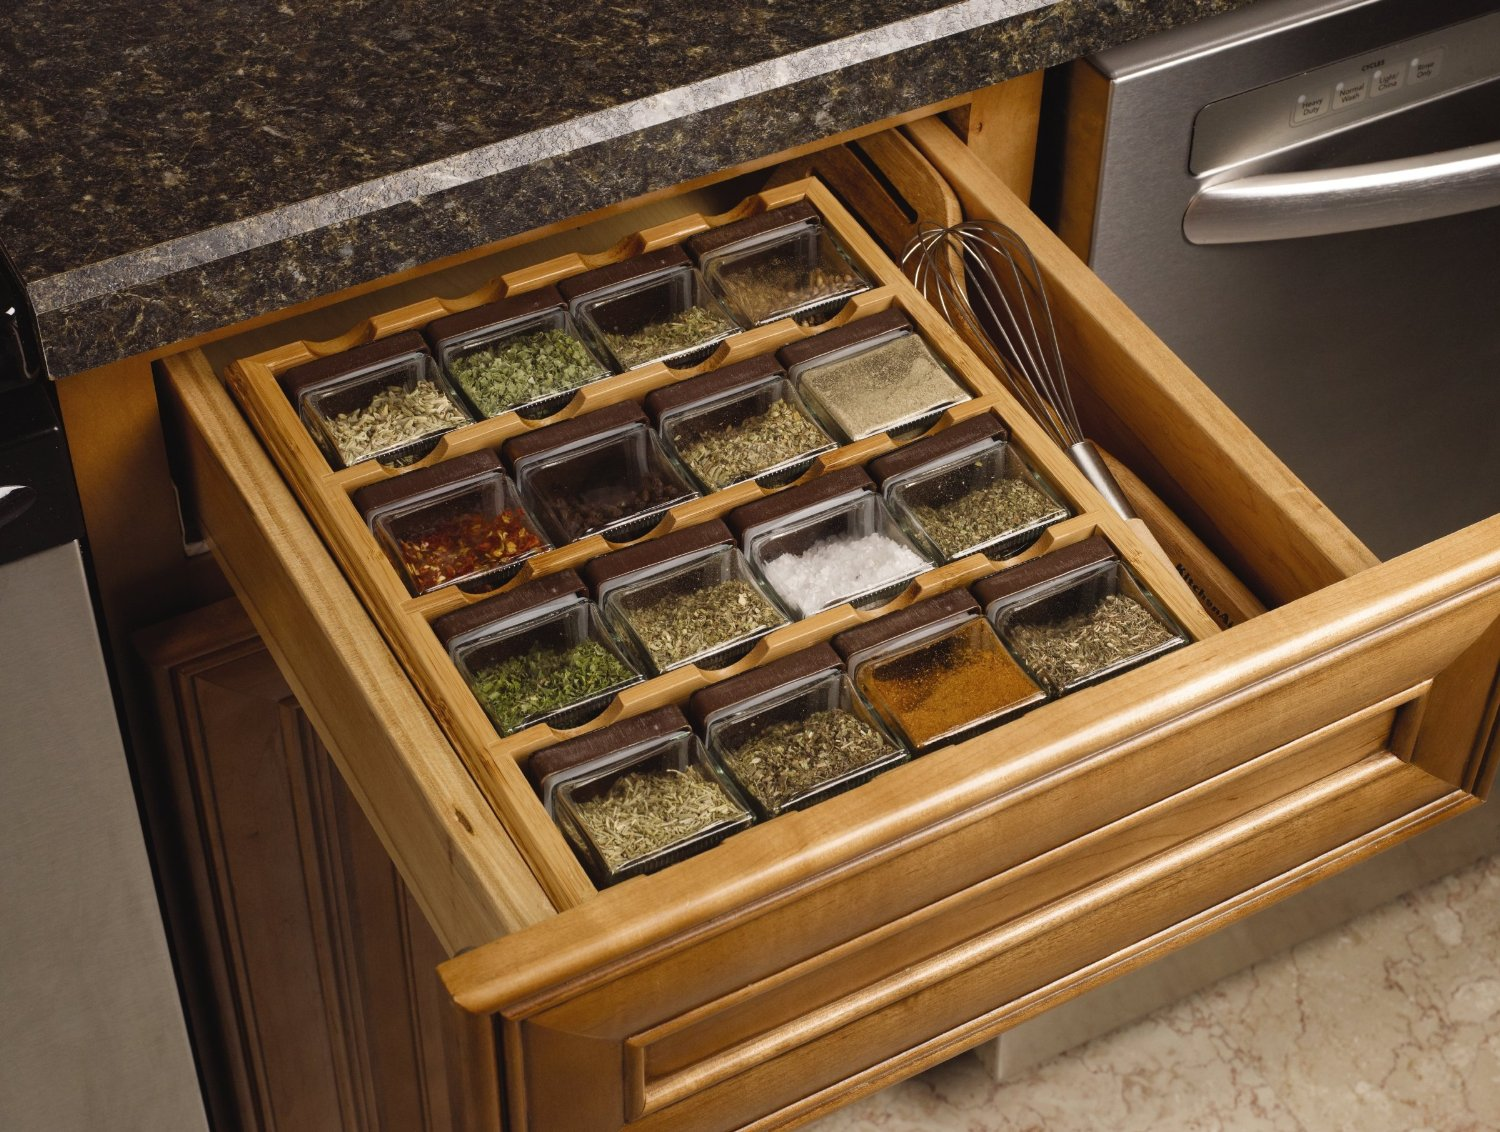 Superbe 16 Cube Drawer Spice Rack